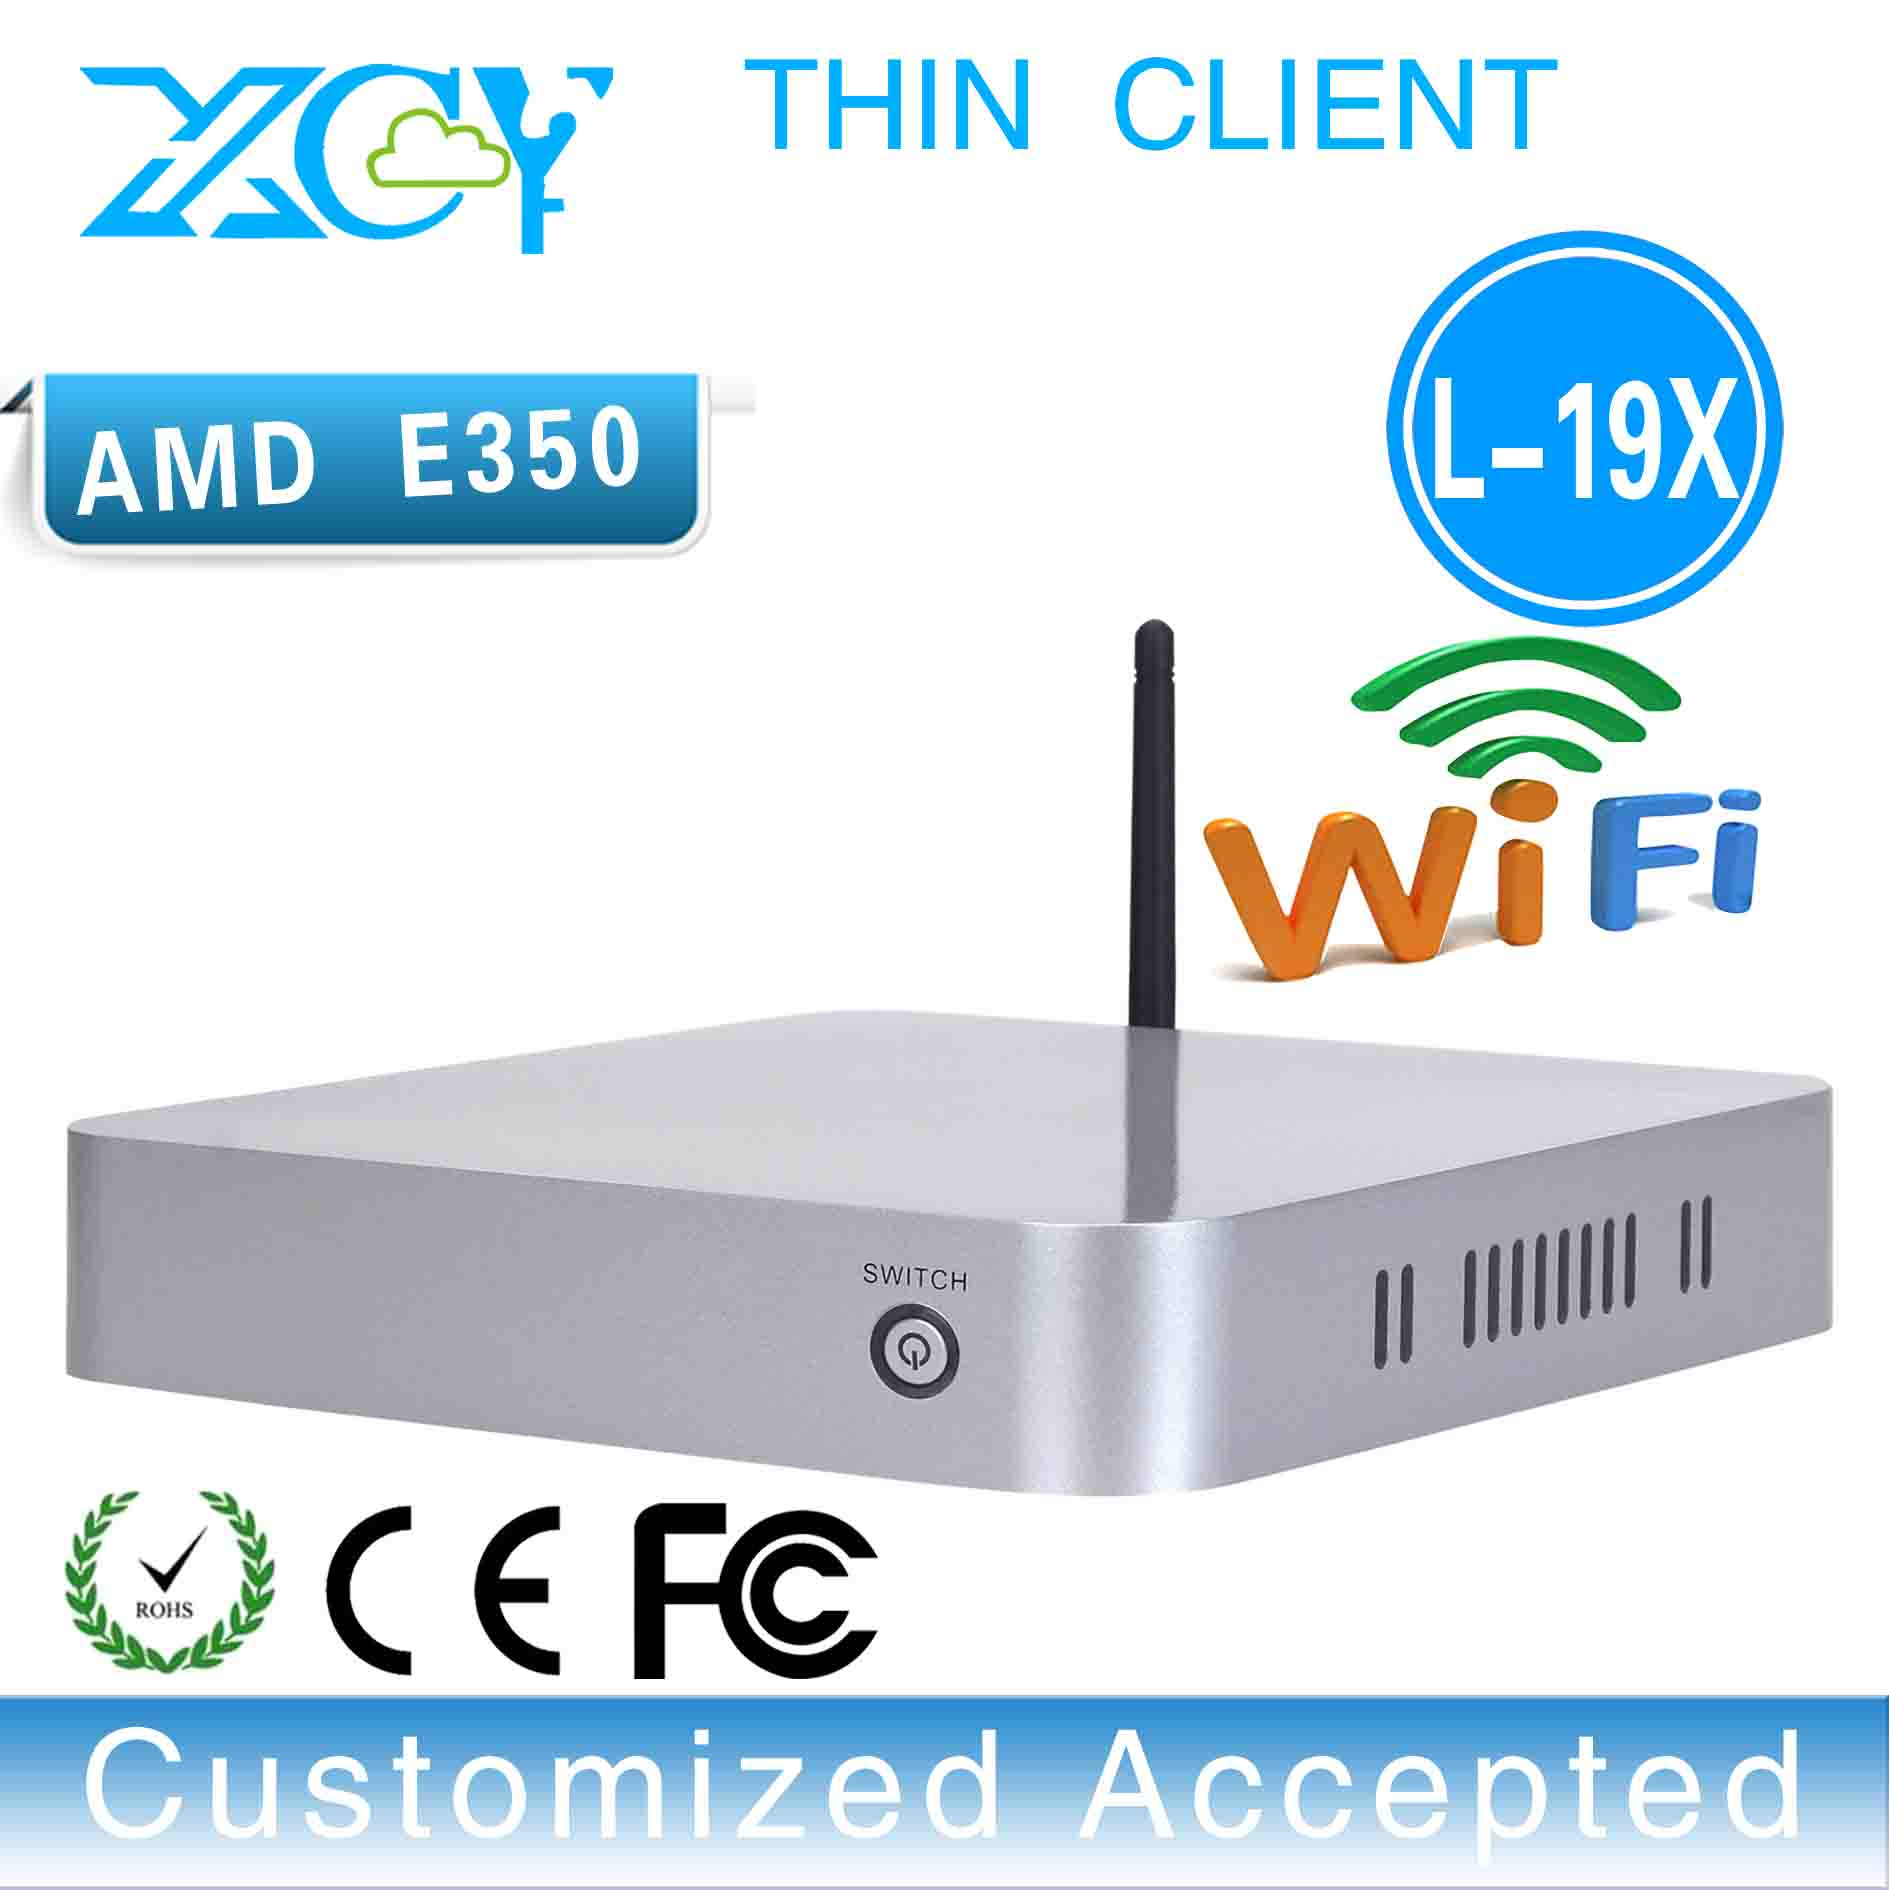 XCY L-19x windows 7 thin client mini pc support youtube, mesenger, skype, video call(China (Mainland))